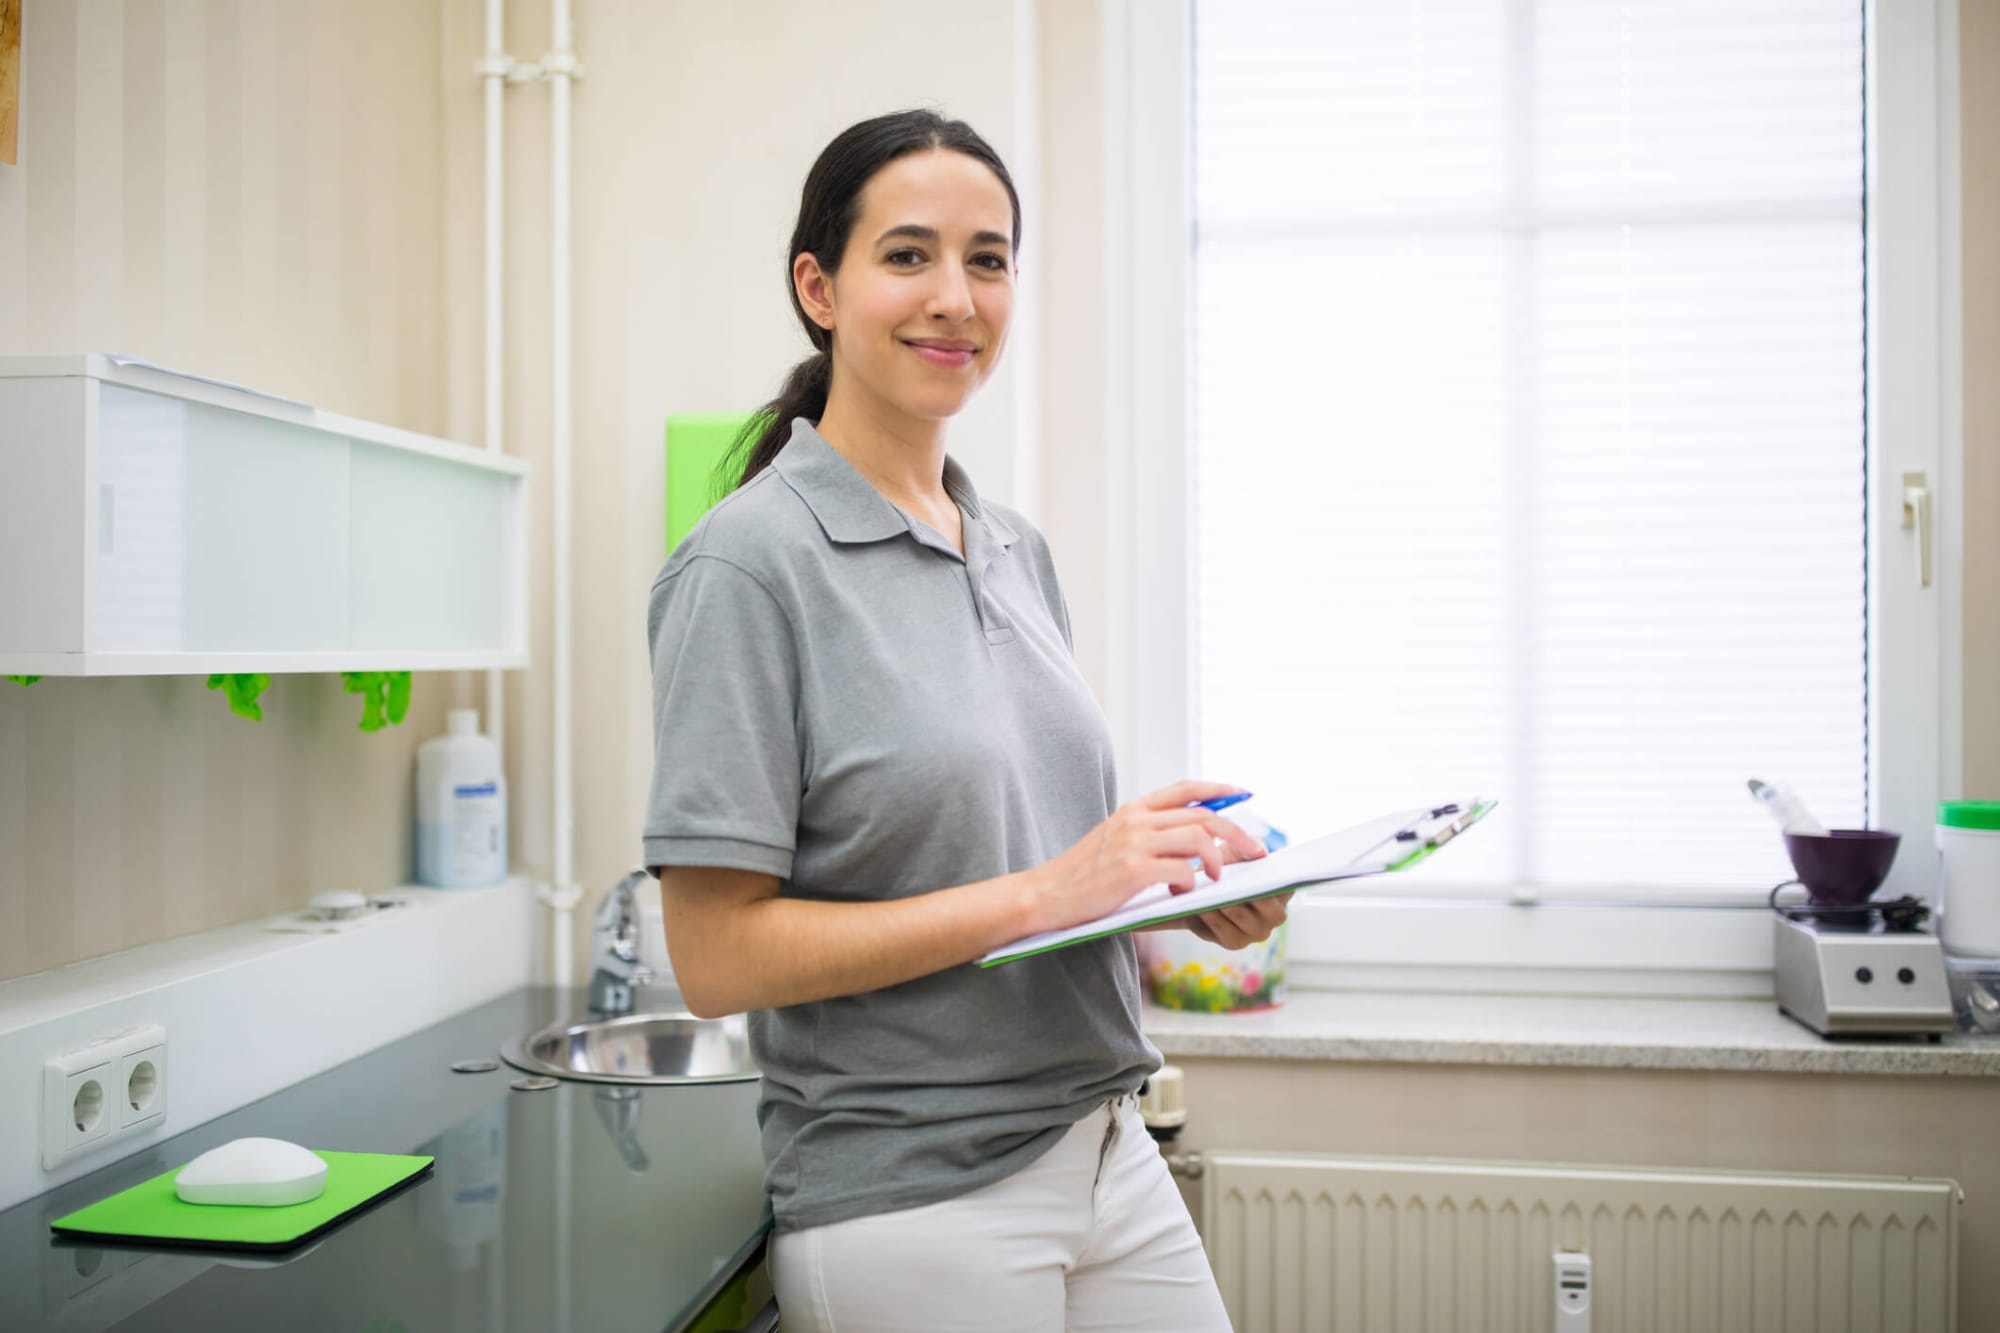 Alternative Clinical Experience for Registered Nurses